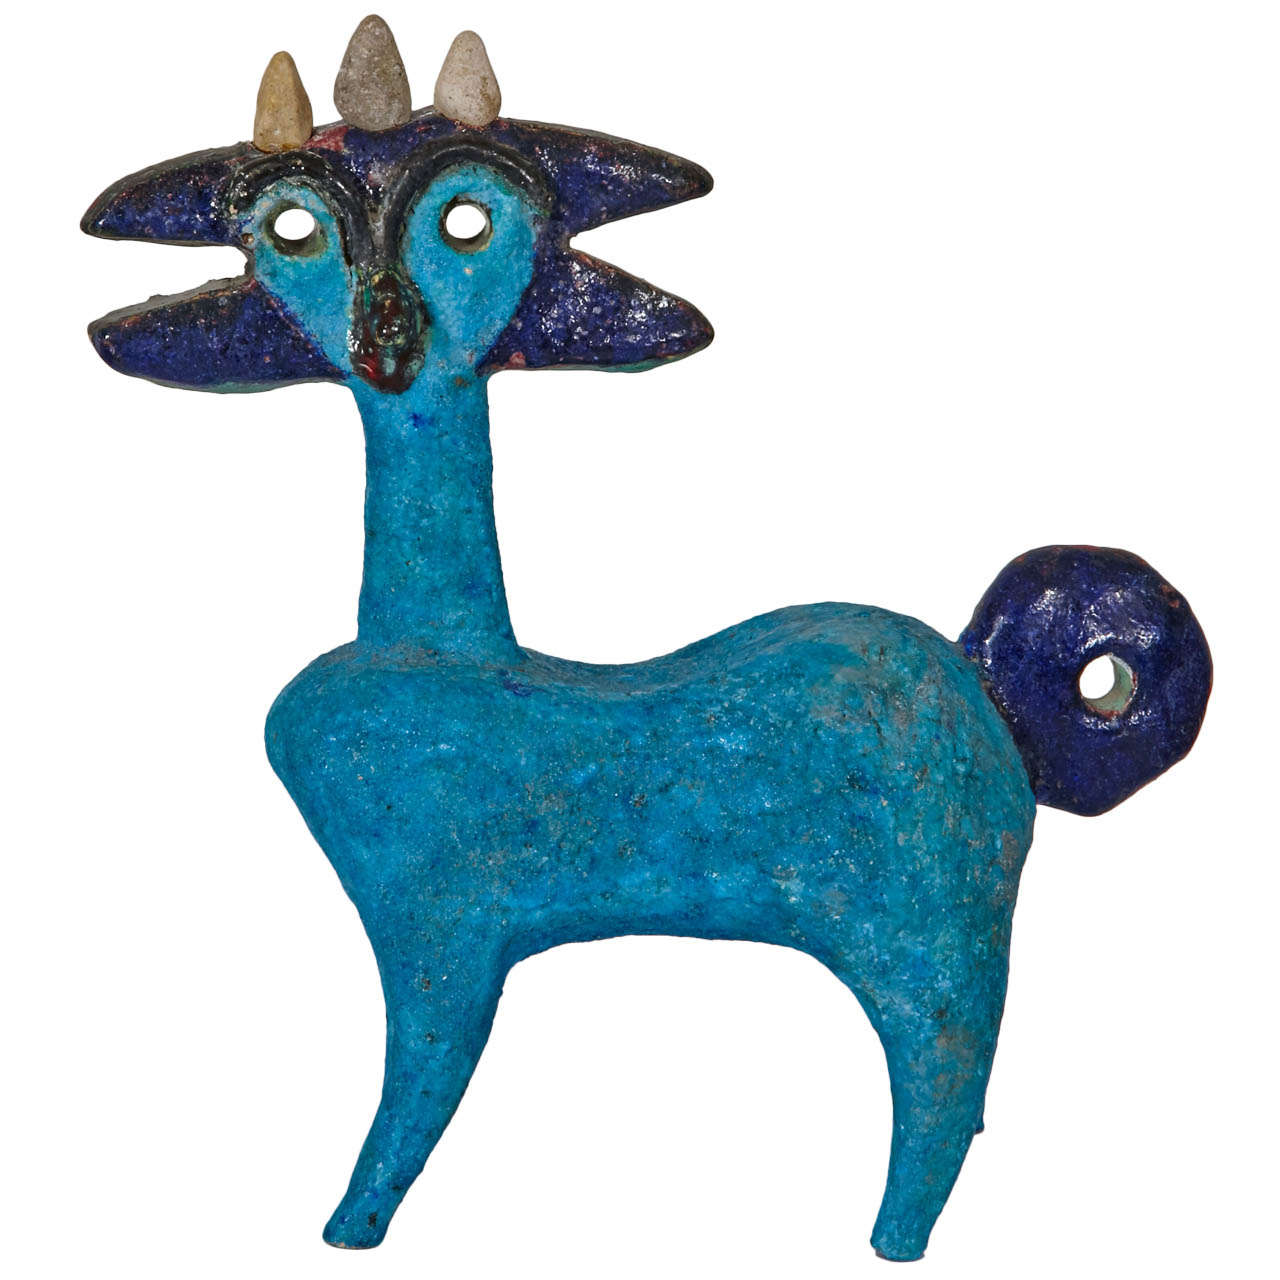 Earthenware Idol by Guidette Carbonell, circa 1960-1965